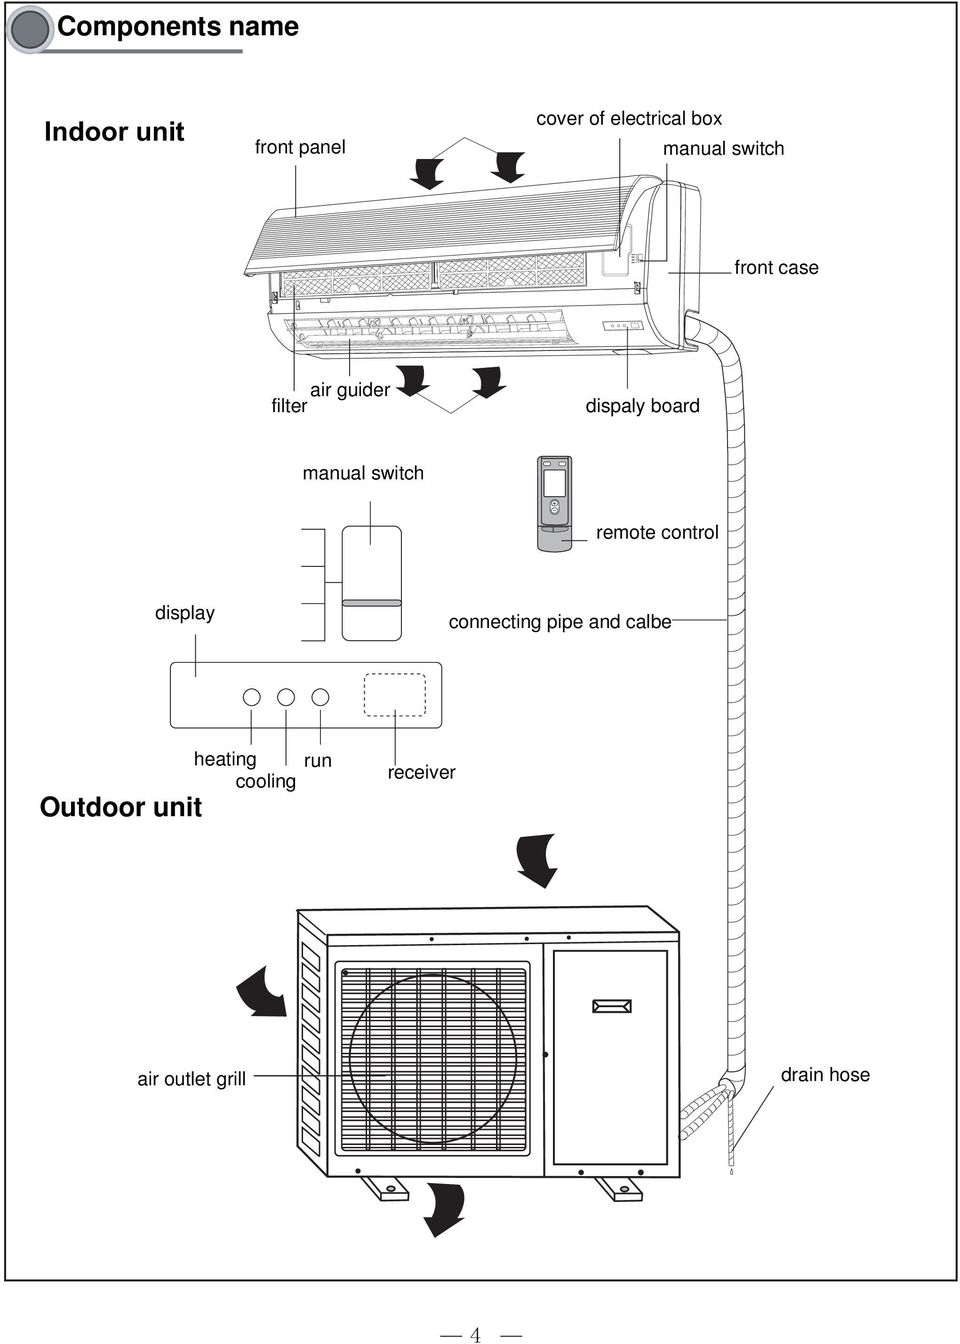 Technical Service Manual For 13seer Comfortstar Plus Air 0413 Rocker Switch Wiring Diagram Remote Control Display Connecting Pipe And Calbe Outdoor